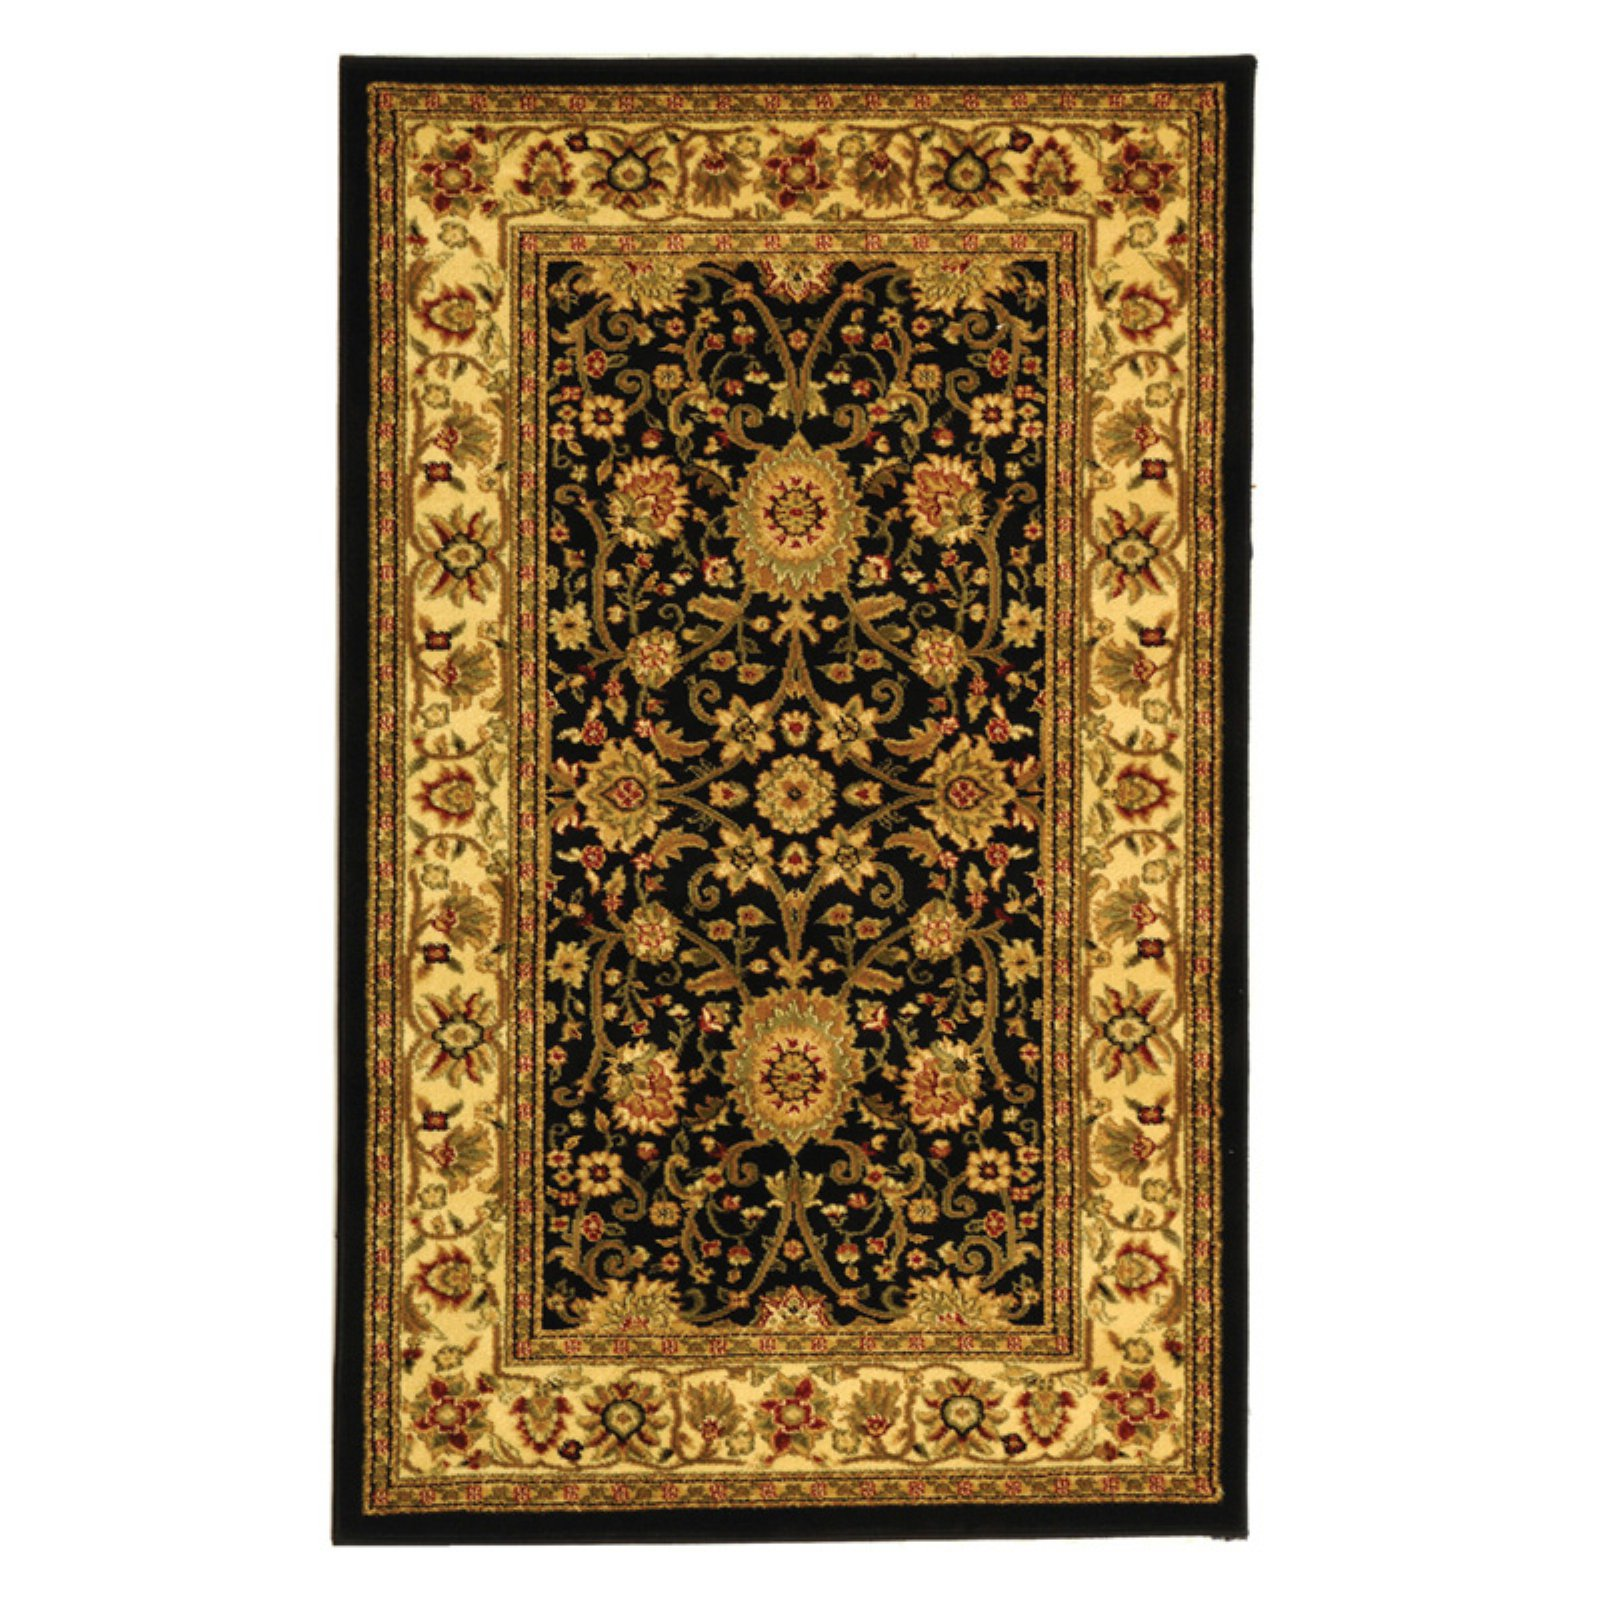 Safavieh Lyndhurst LNH212A Area Rug - Black/Cream